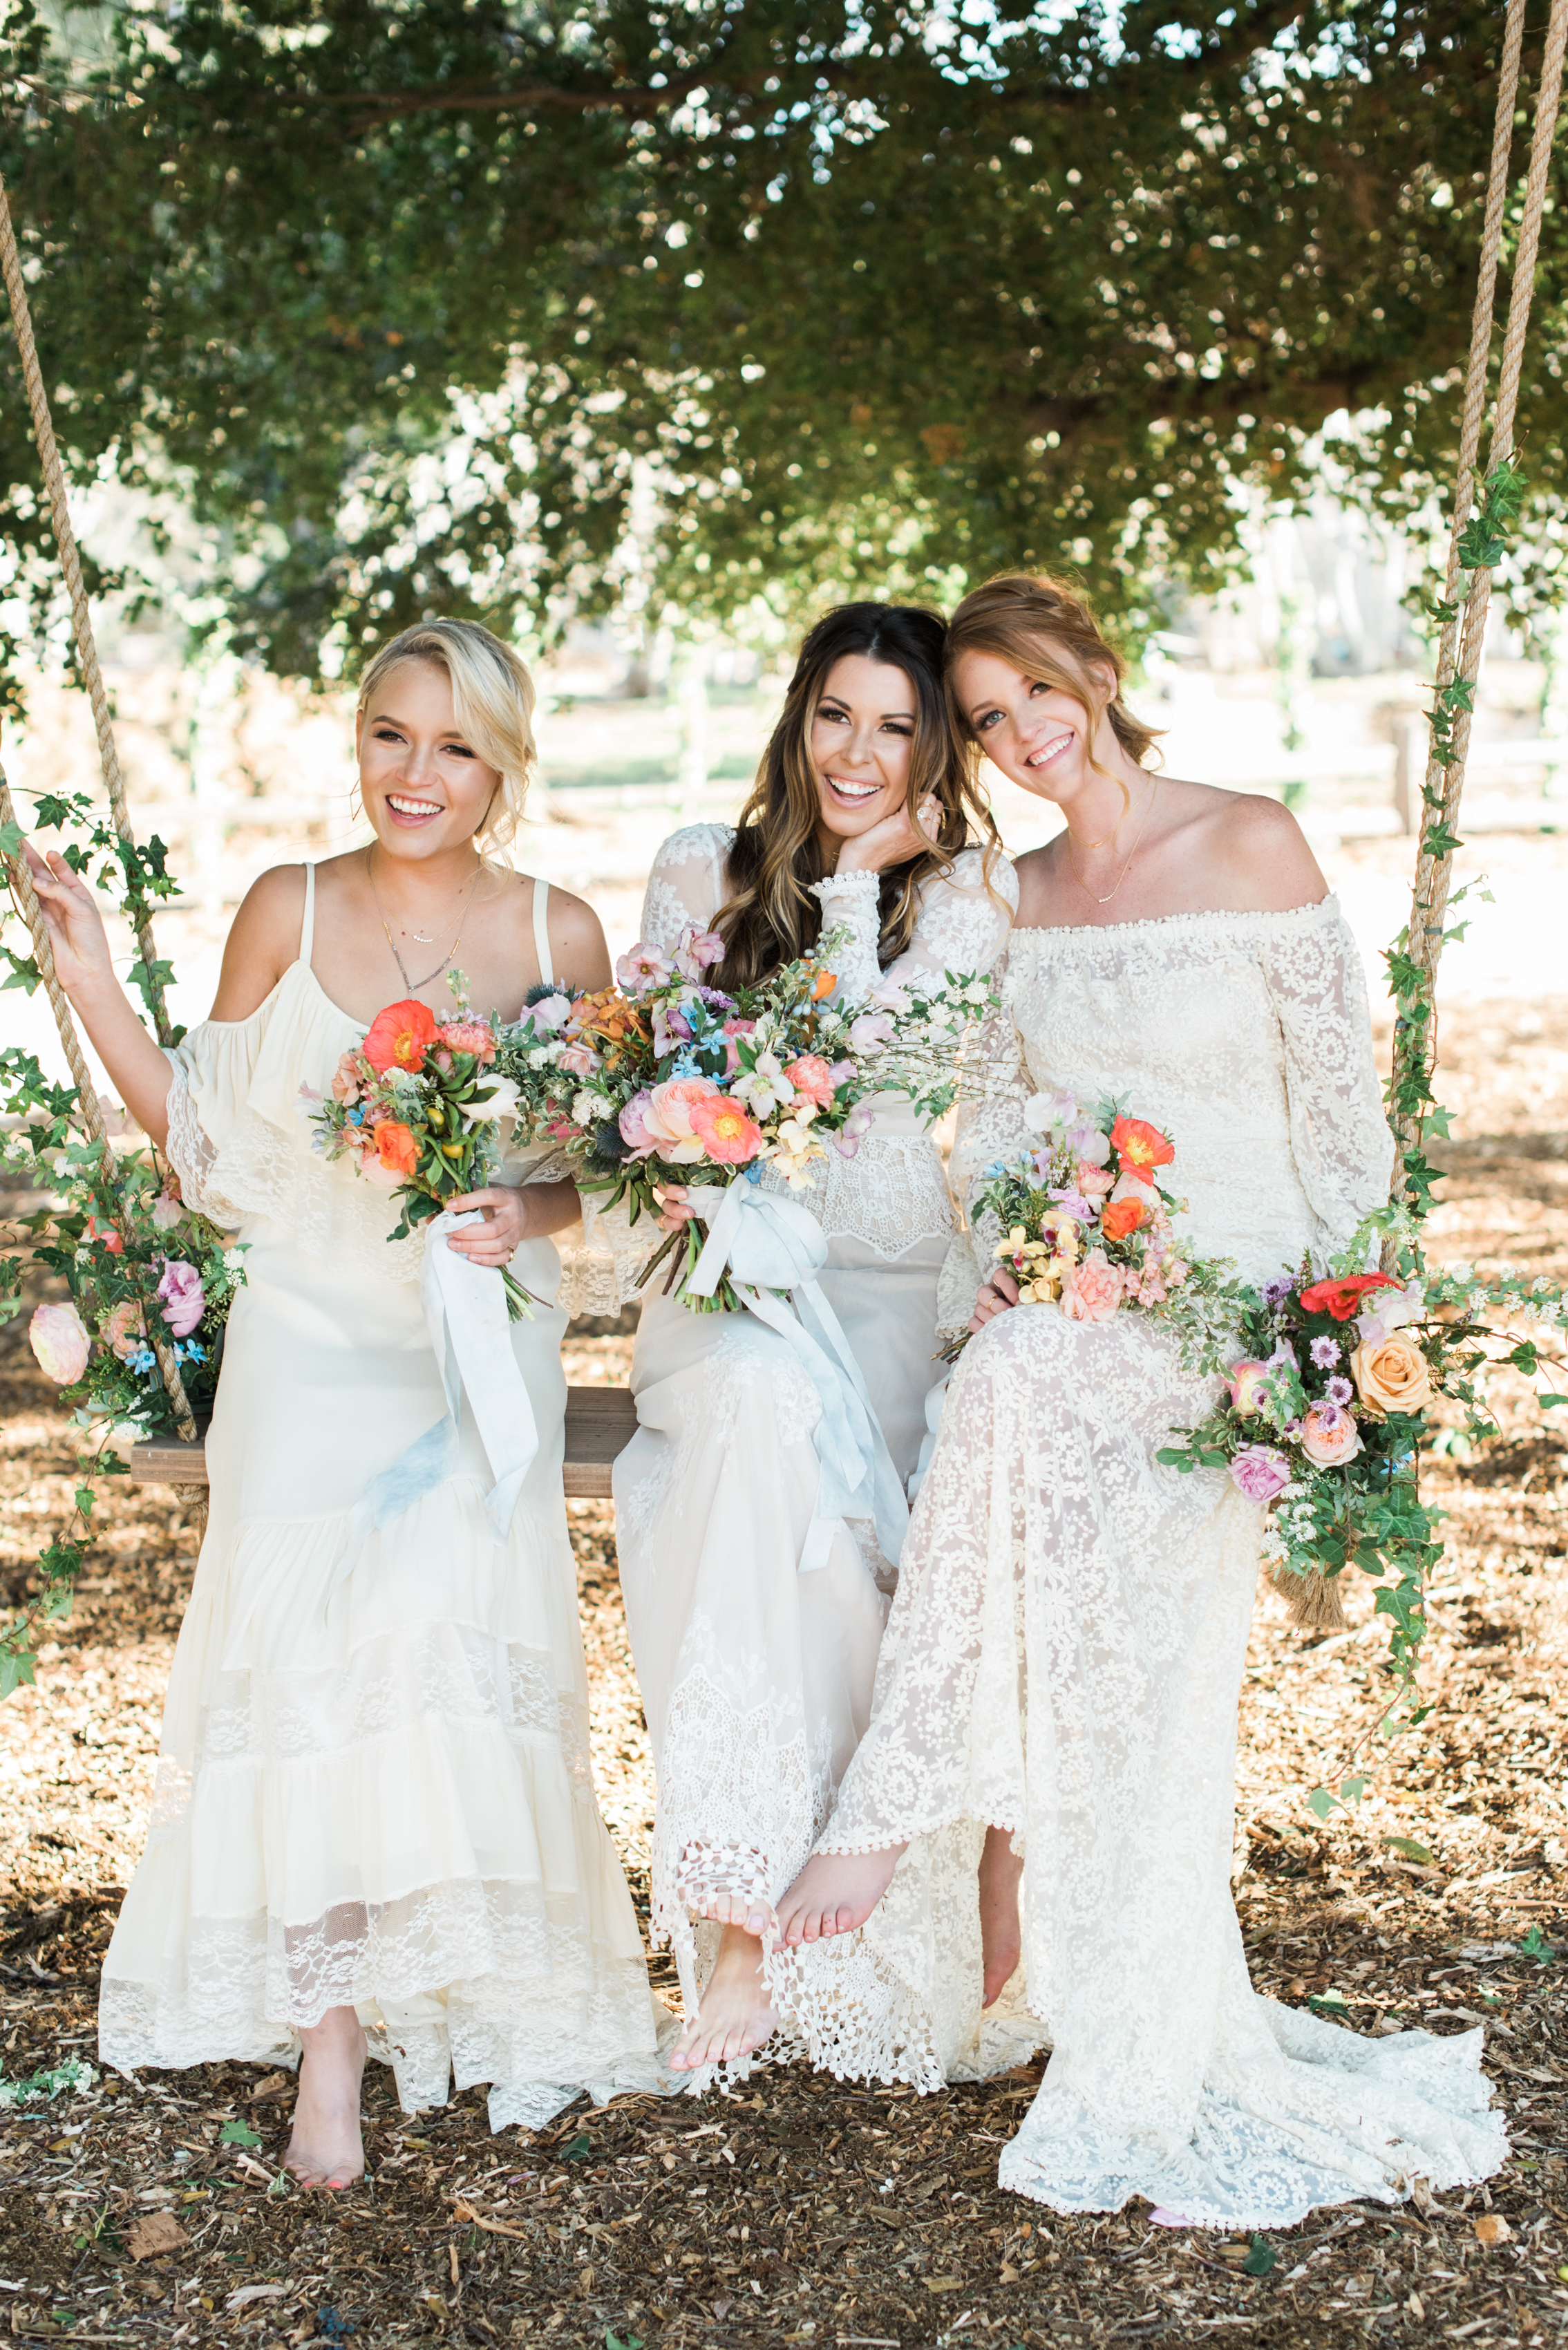 summer bridal shower ideas brides with guests in white